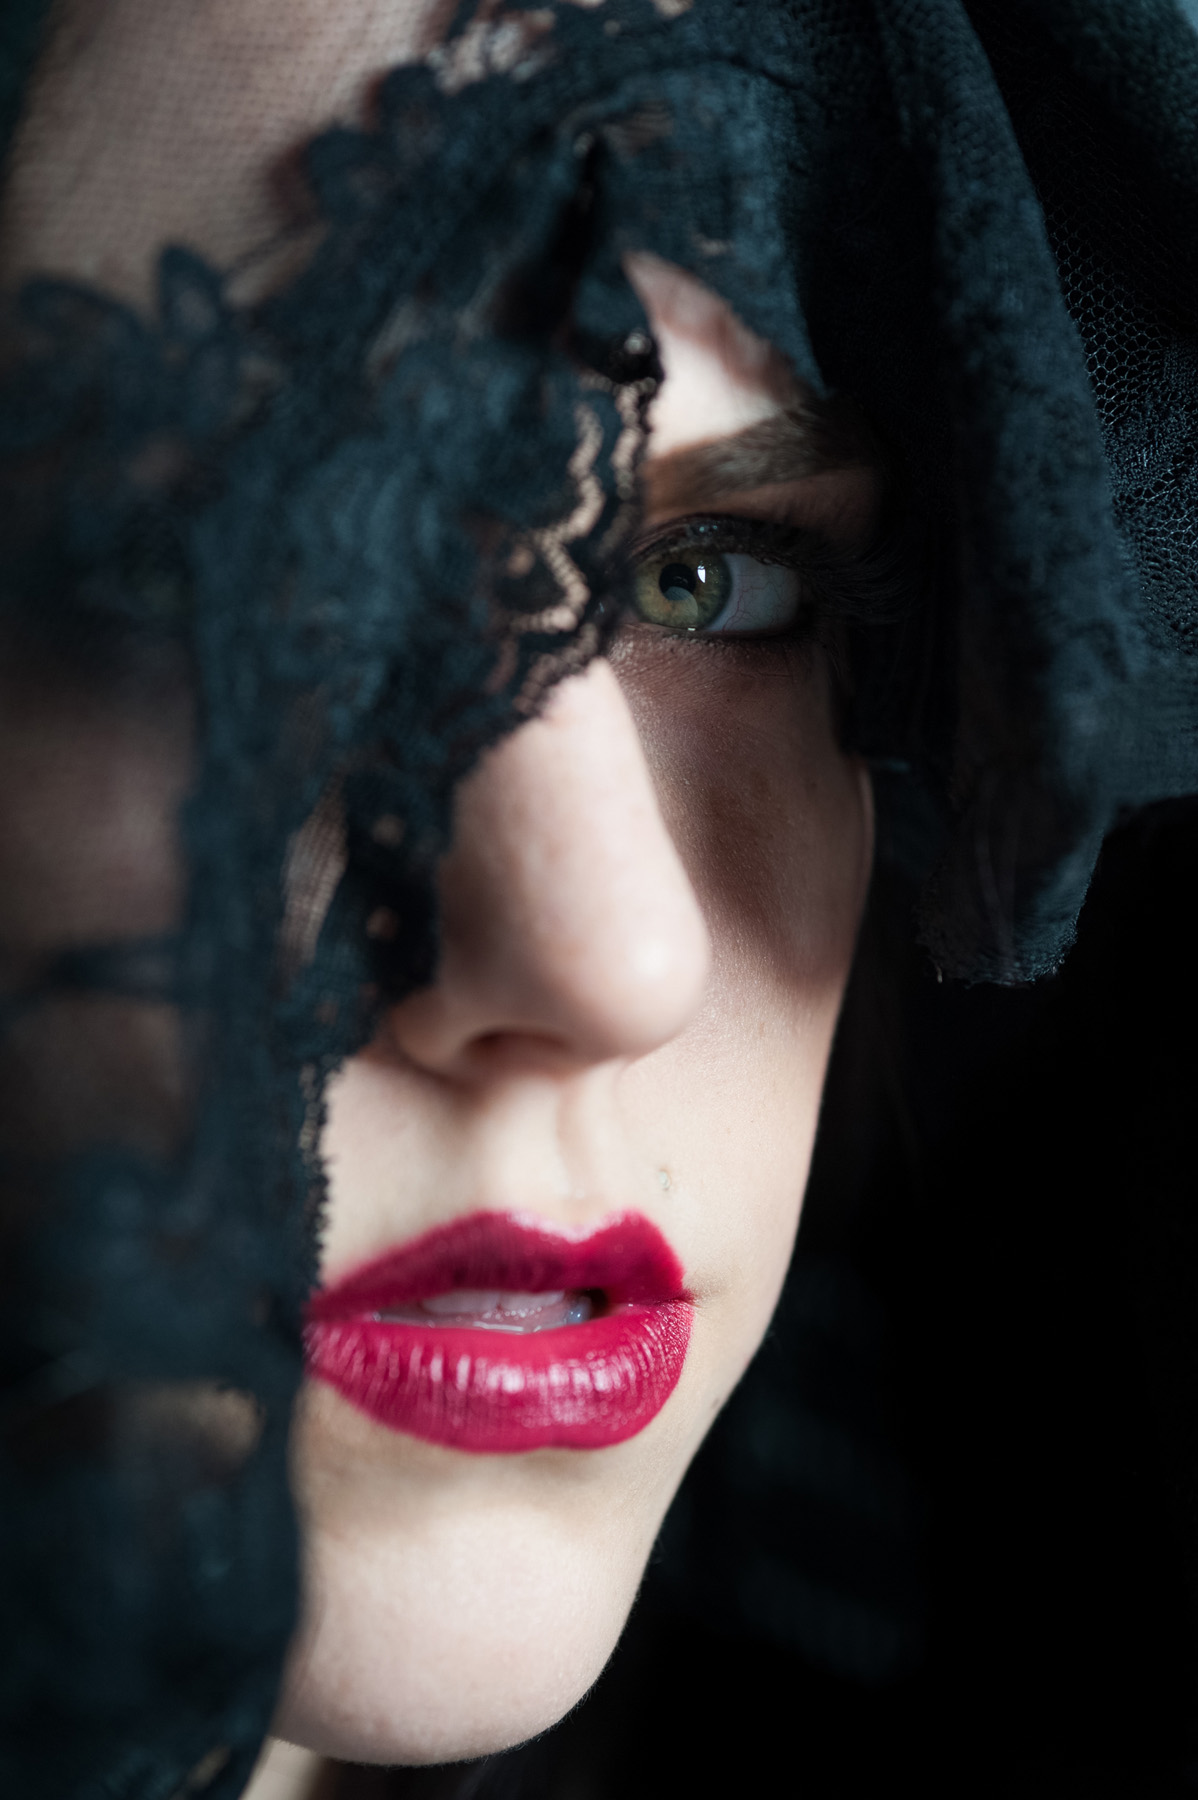 A close up color portrait of Christina wearing a black veil partially obscuring her face and you can clearly see her left eye a bright green color and her bright red lips set against her pale skin.